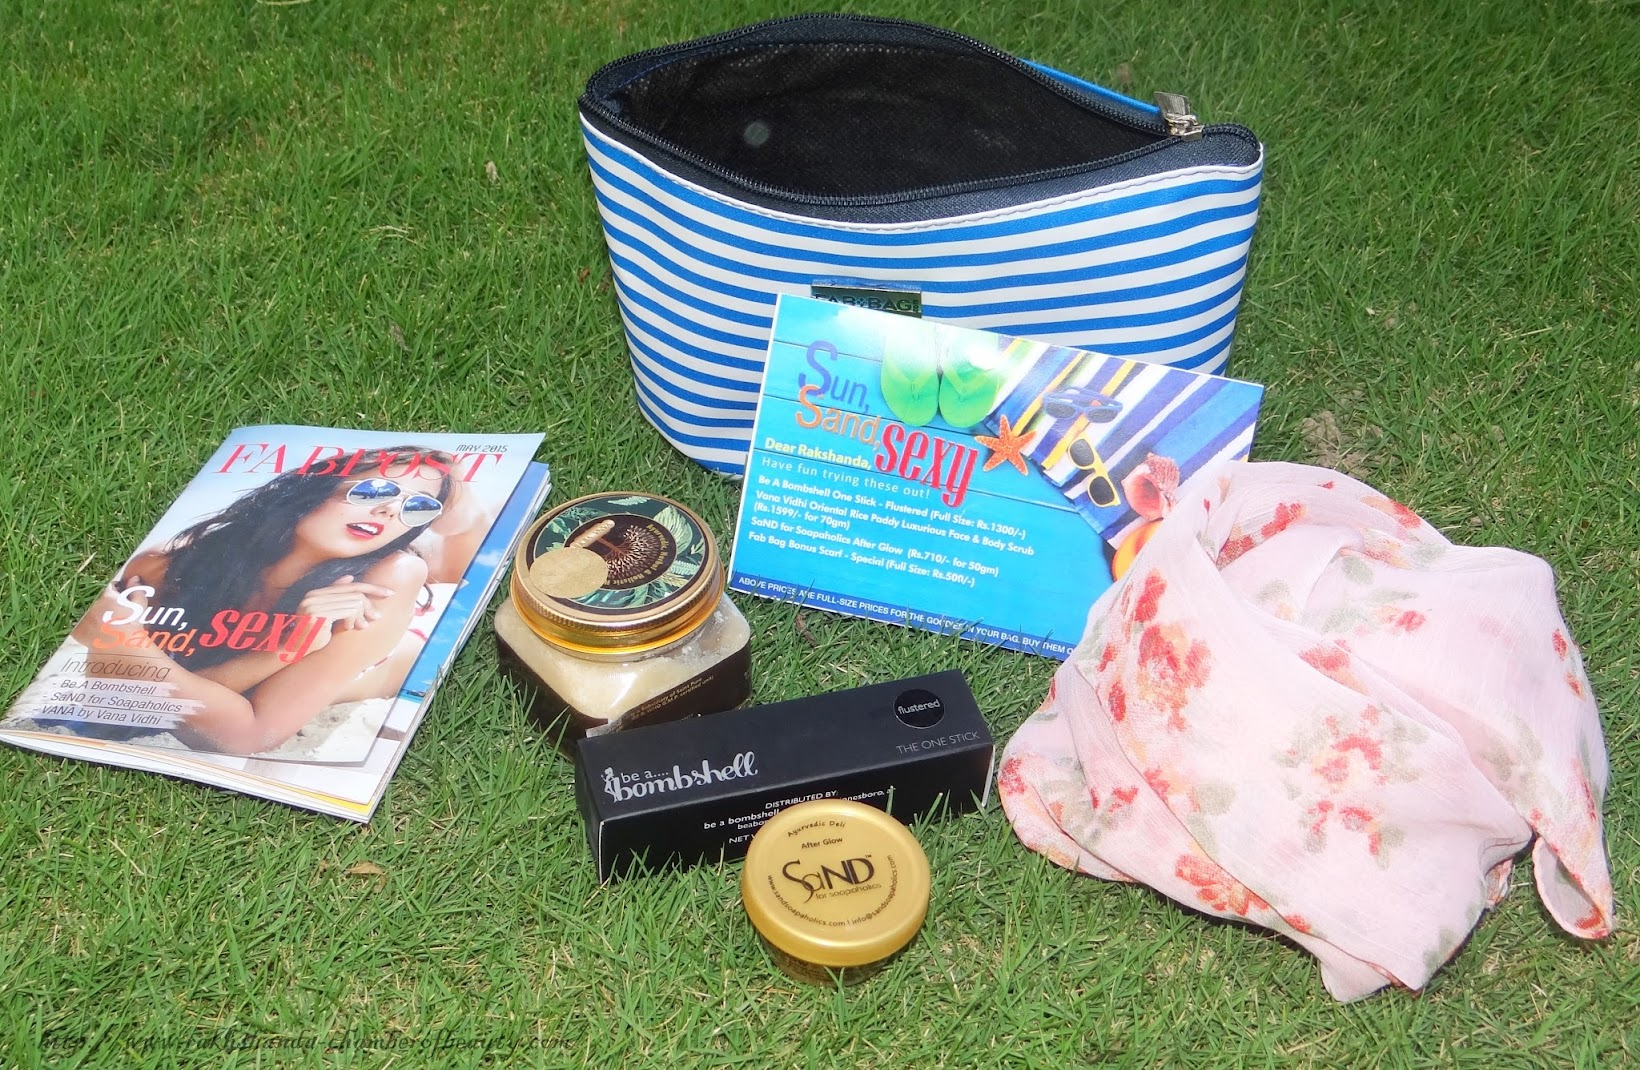 Fab Bag, May Fab Bag, monthly subscription, Be a bombshell, After glow sand, lip, cheek and eye stick, review, Vana Vidhi Rice scrub, review and swatches